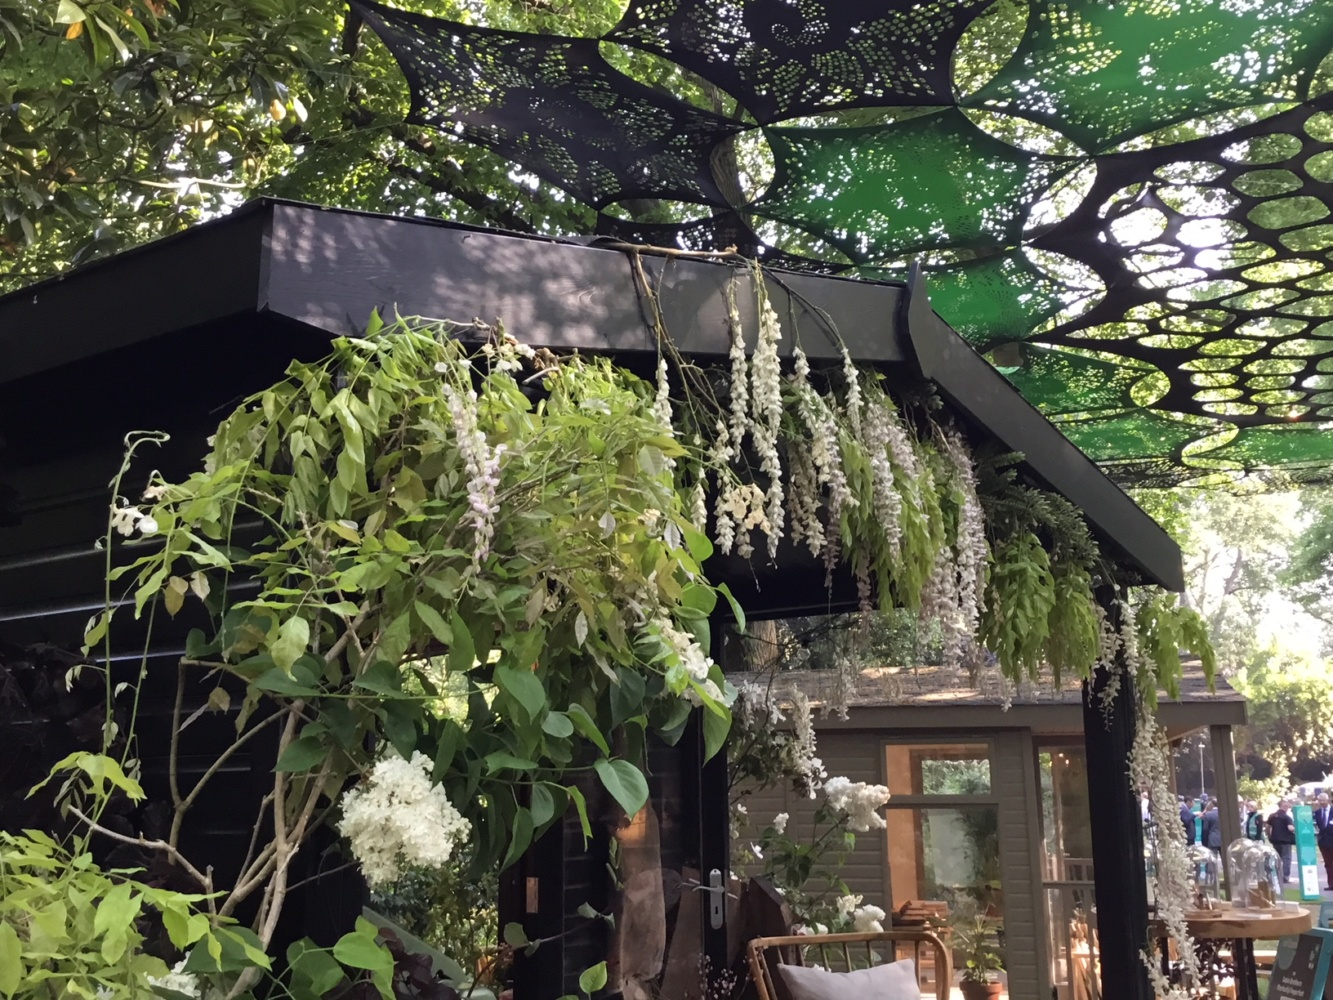 Toms Studio at Chelsea Flower Show 2018 was adorned with a wisteria vine on the roofline